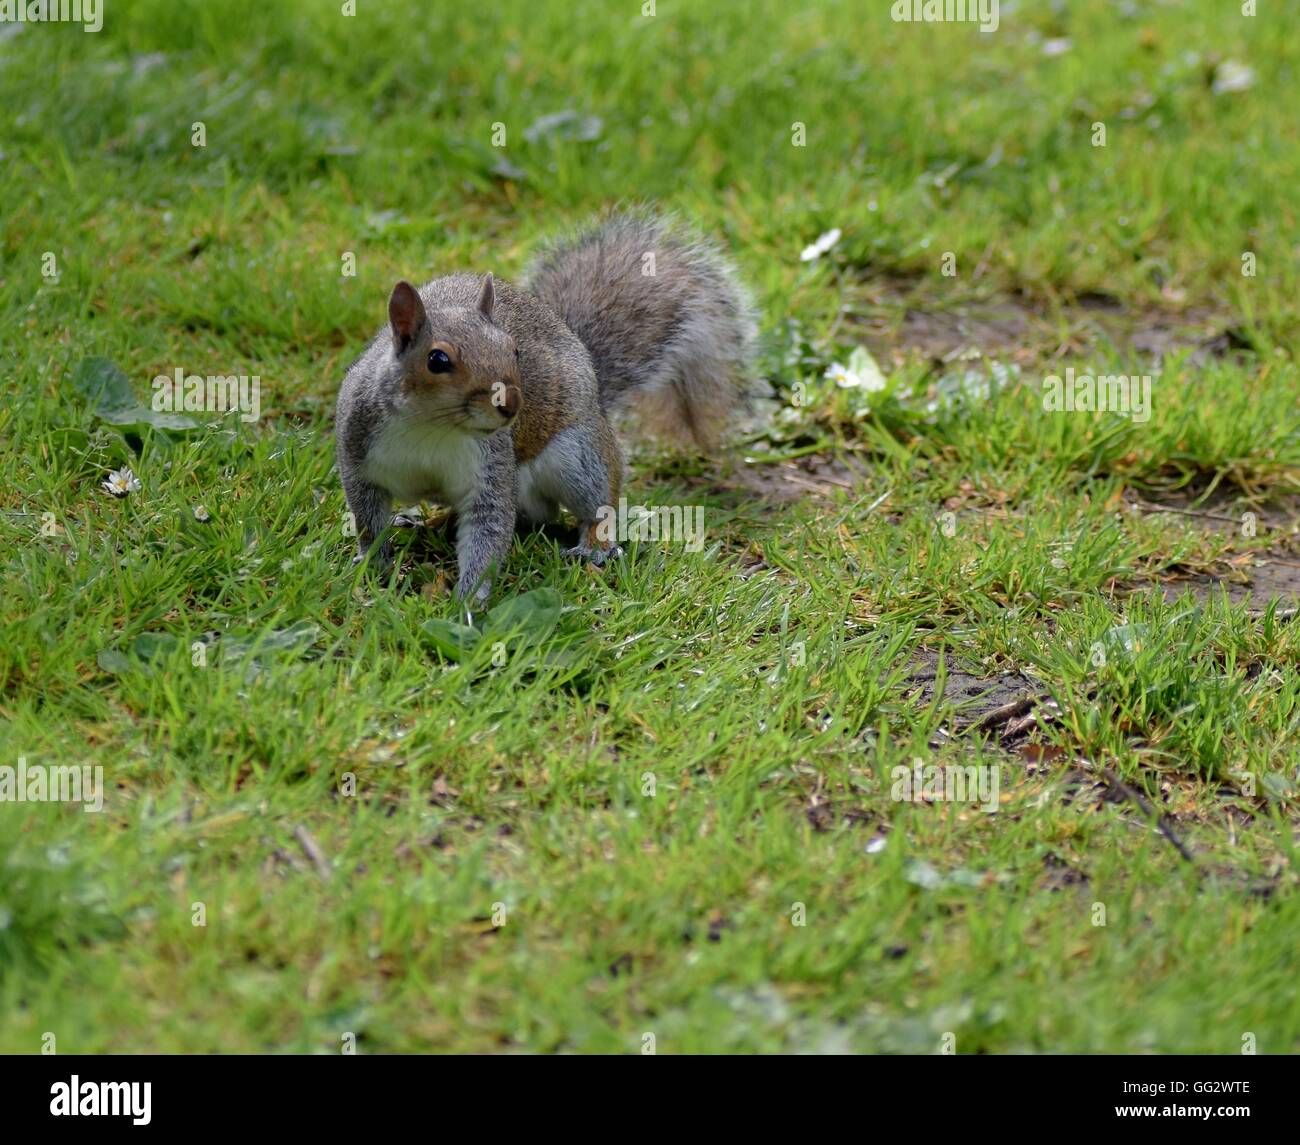 Grey squirrel looking for food in People's Park in Banbury - Stock Image